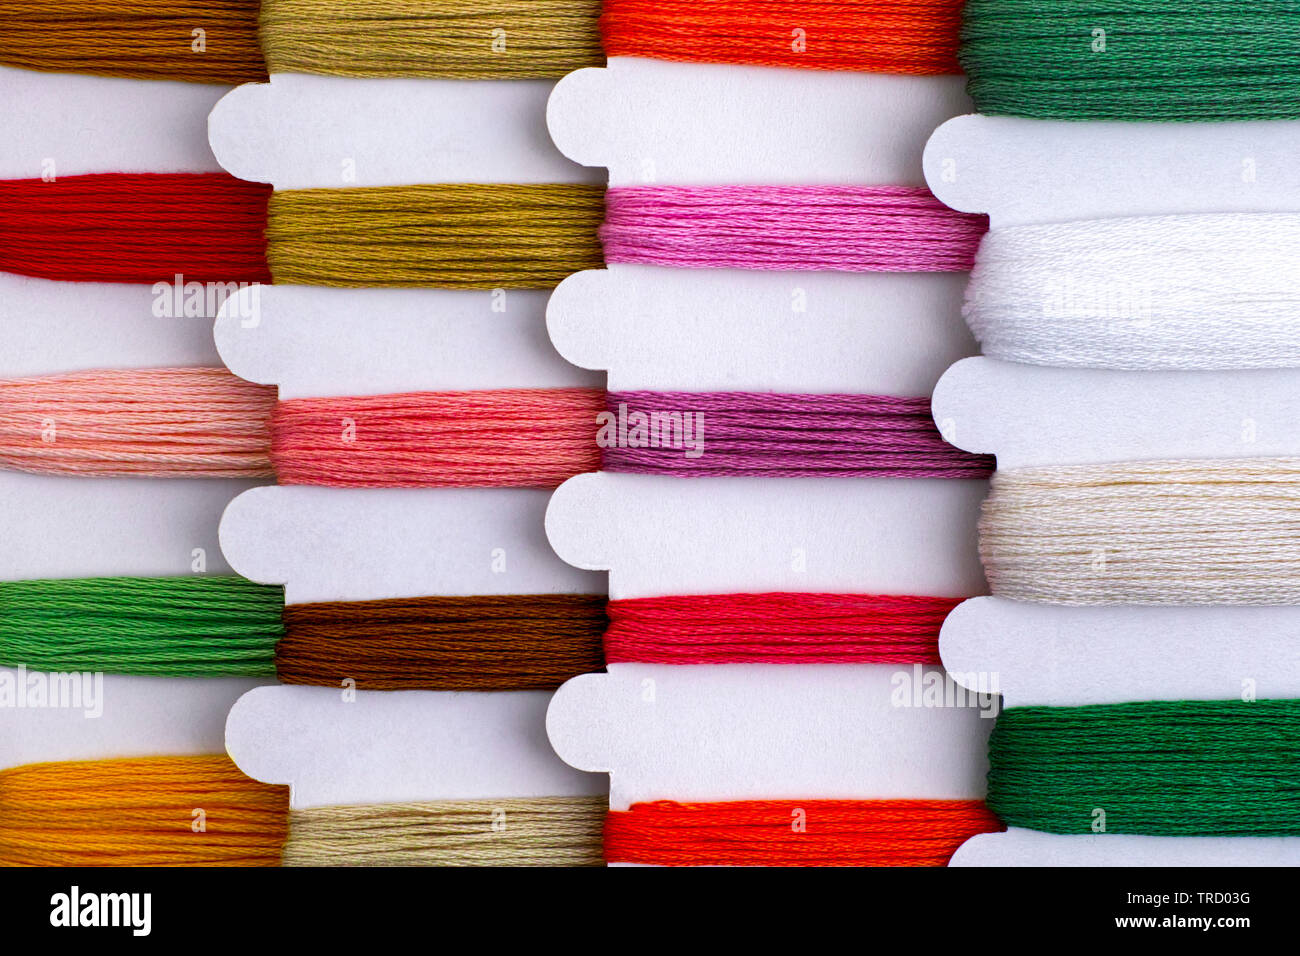 Colored embroidery threads on spools in a row ready for cross stitch. Close-up. - Stock Image